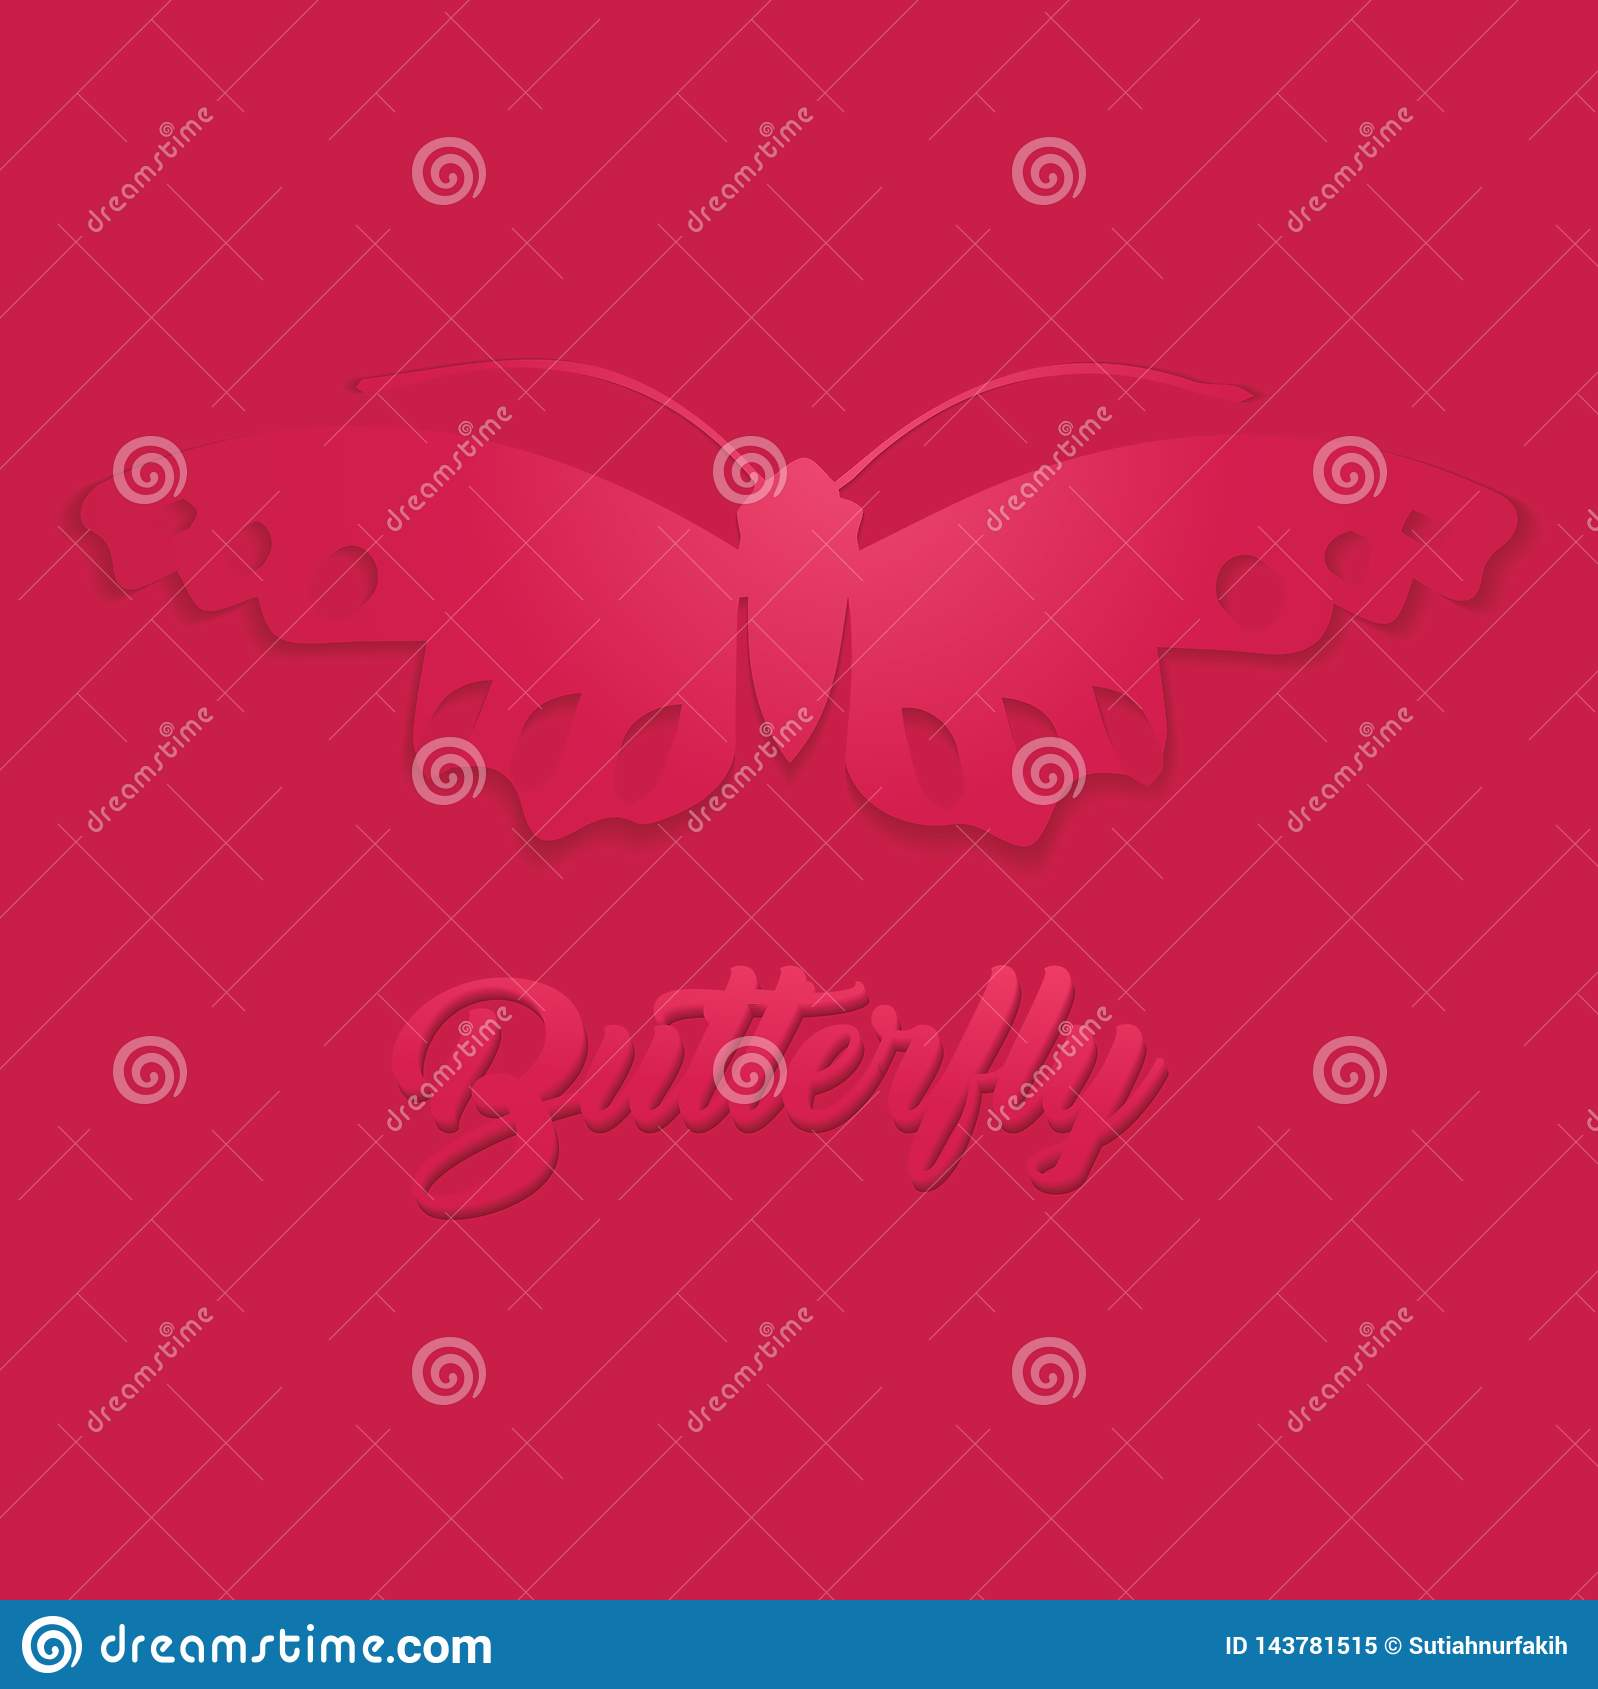 Butterfly Geometric paper craft style